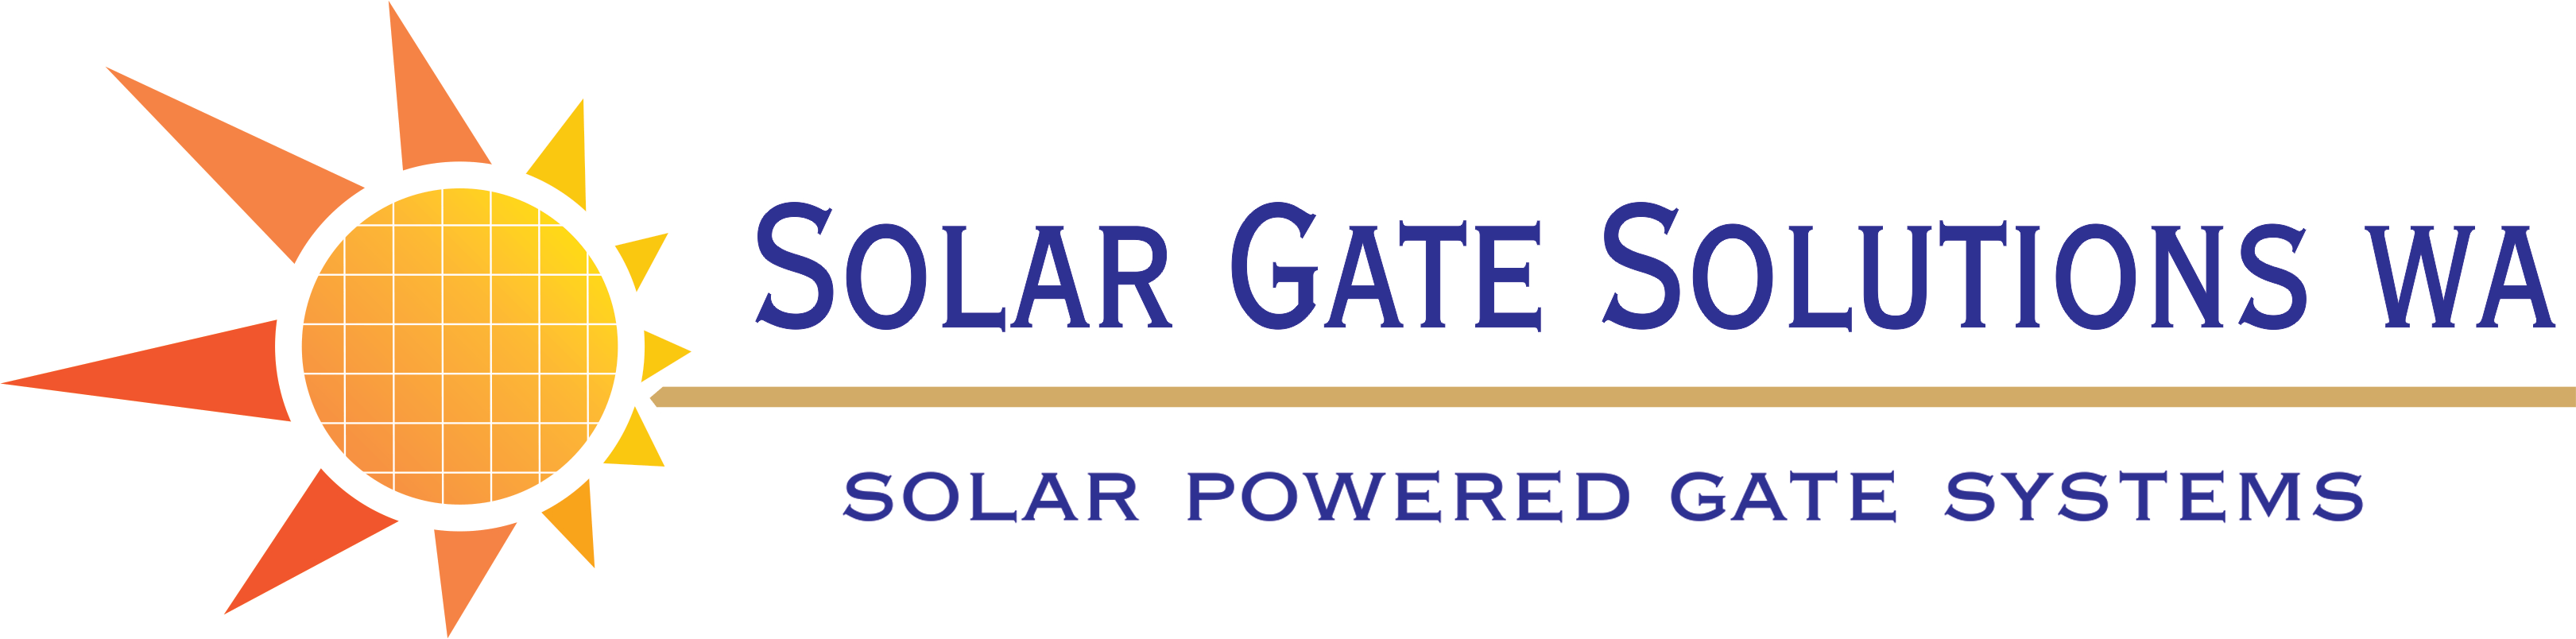 Solar Gate Solutions Perth WA